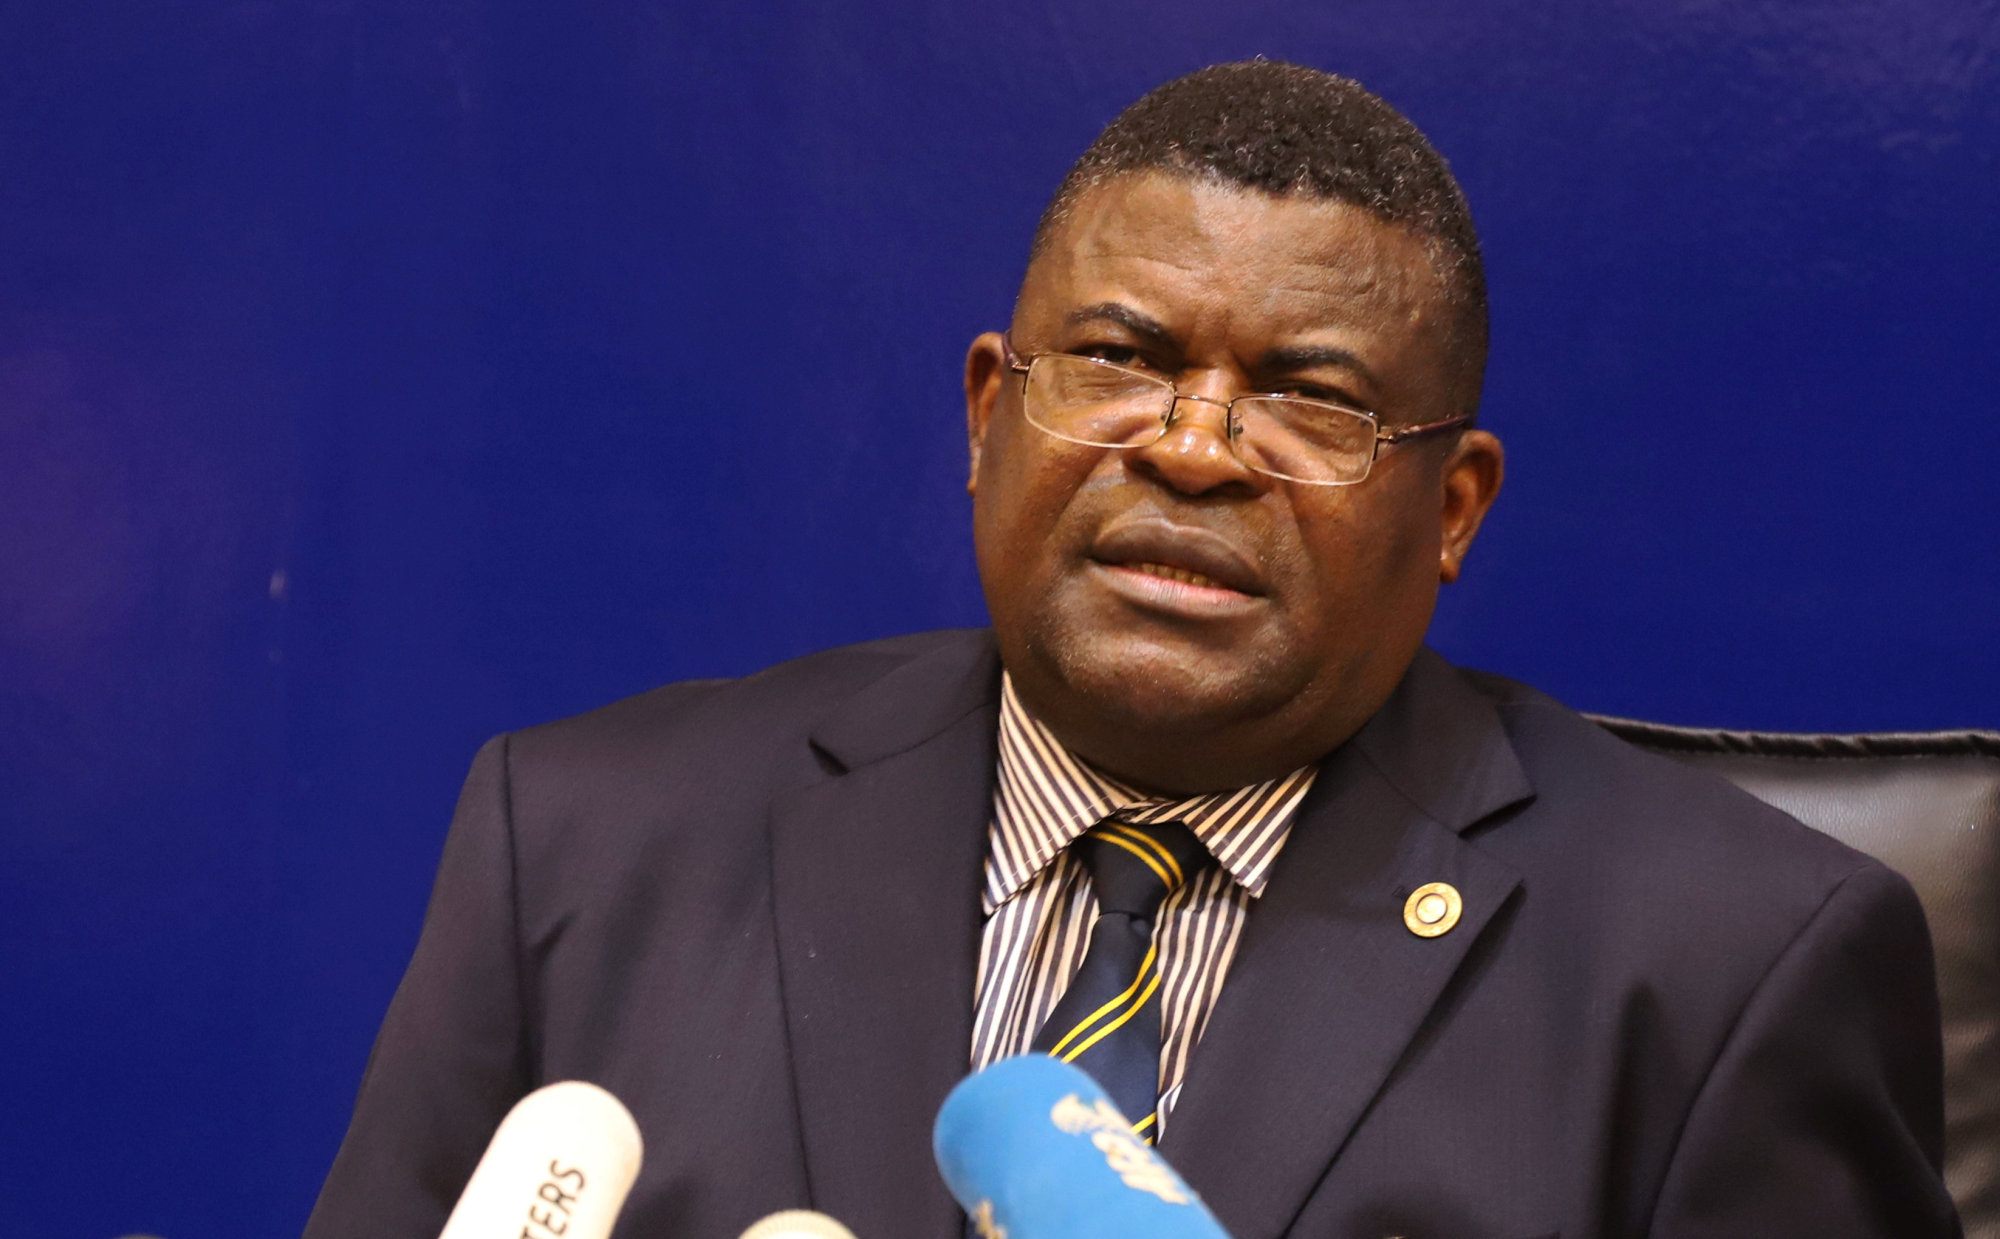 Congo's National Independent Electoral Commission (CENI) spokesman, Jean-Pierre Kalamba, addresses a news conference in Kinshasa Wednesday. | REUTERS